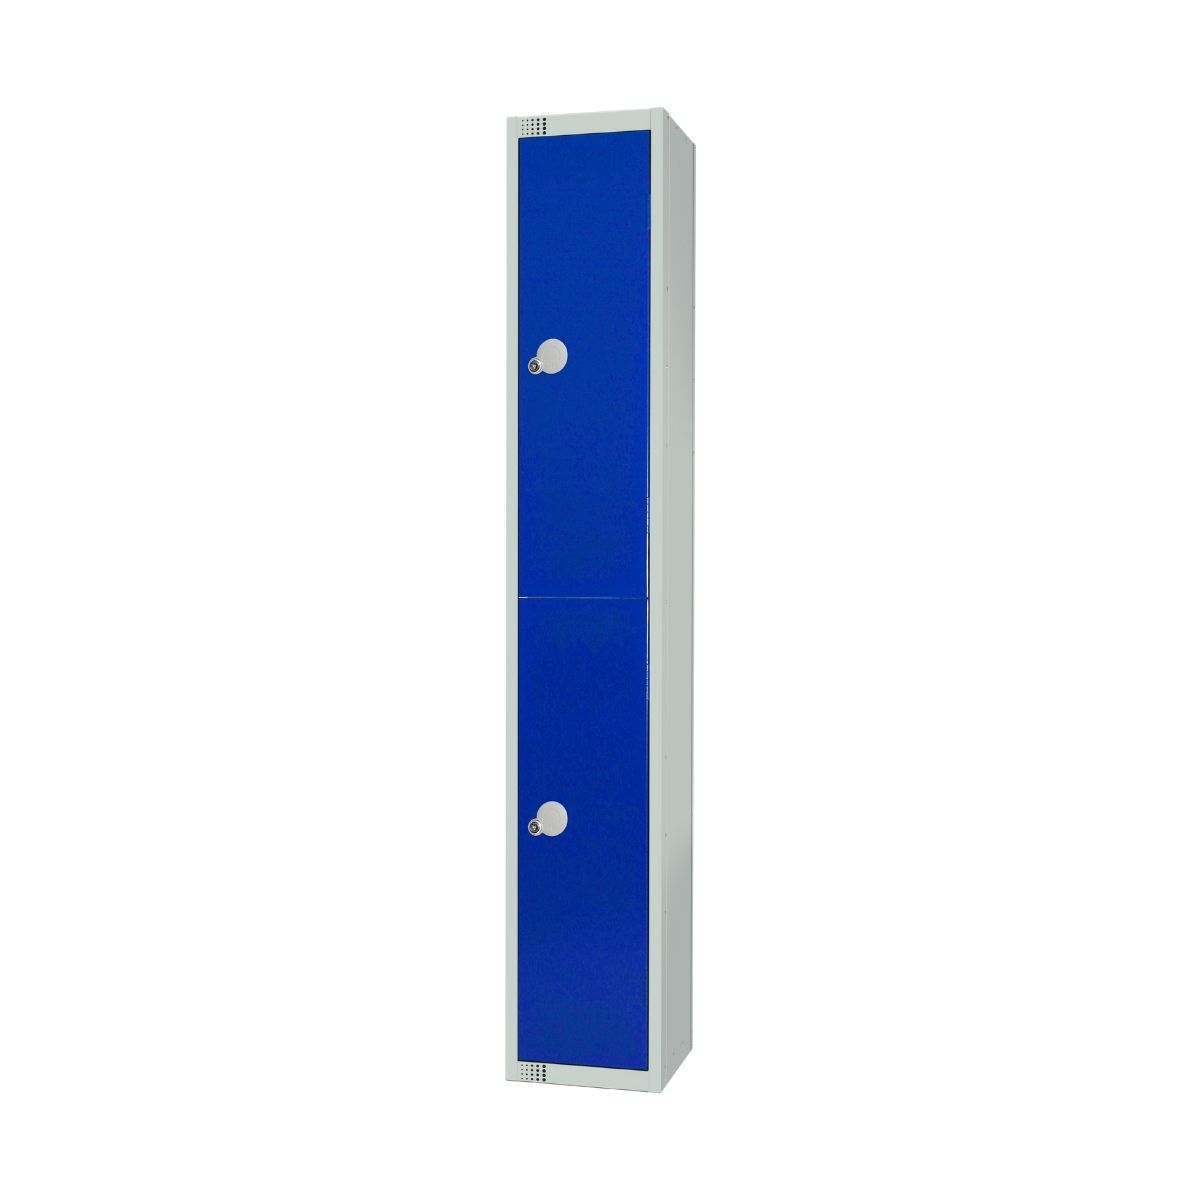 JP0028 Two Door Compartment Locker 1800 x 300 x 300